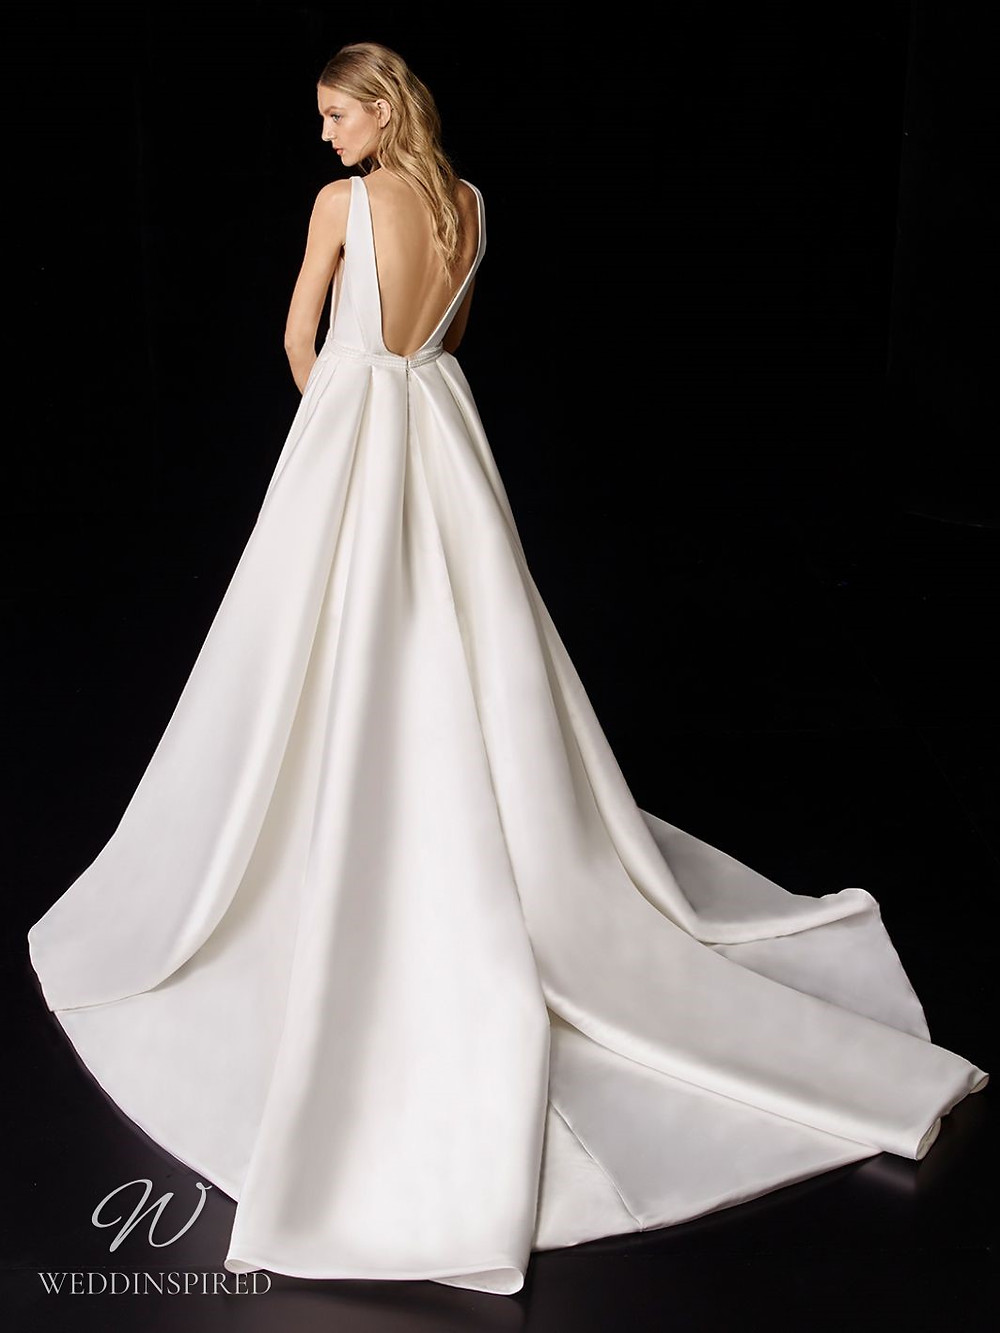 An Enzoani silk ball gown wedding dress with a low back